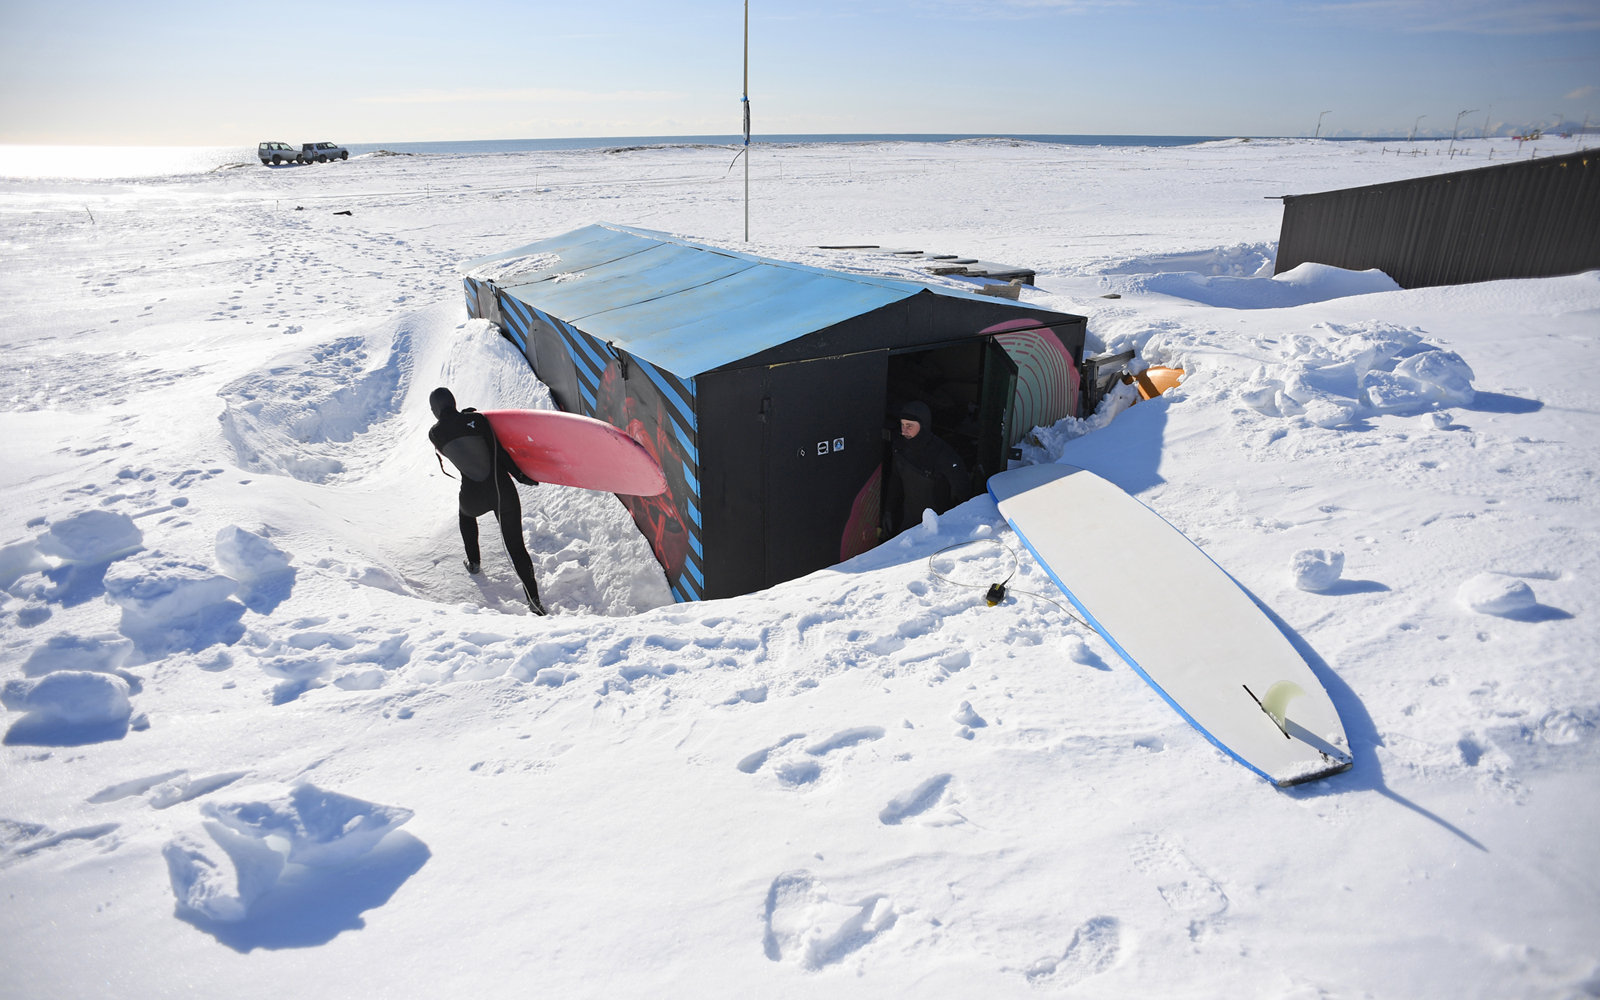 Surf camp at Khalaktyrsky Beach in the winter